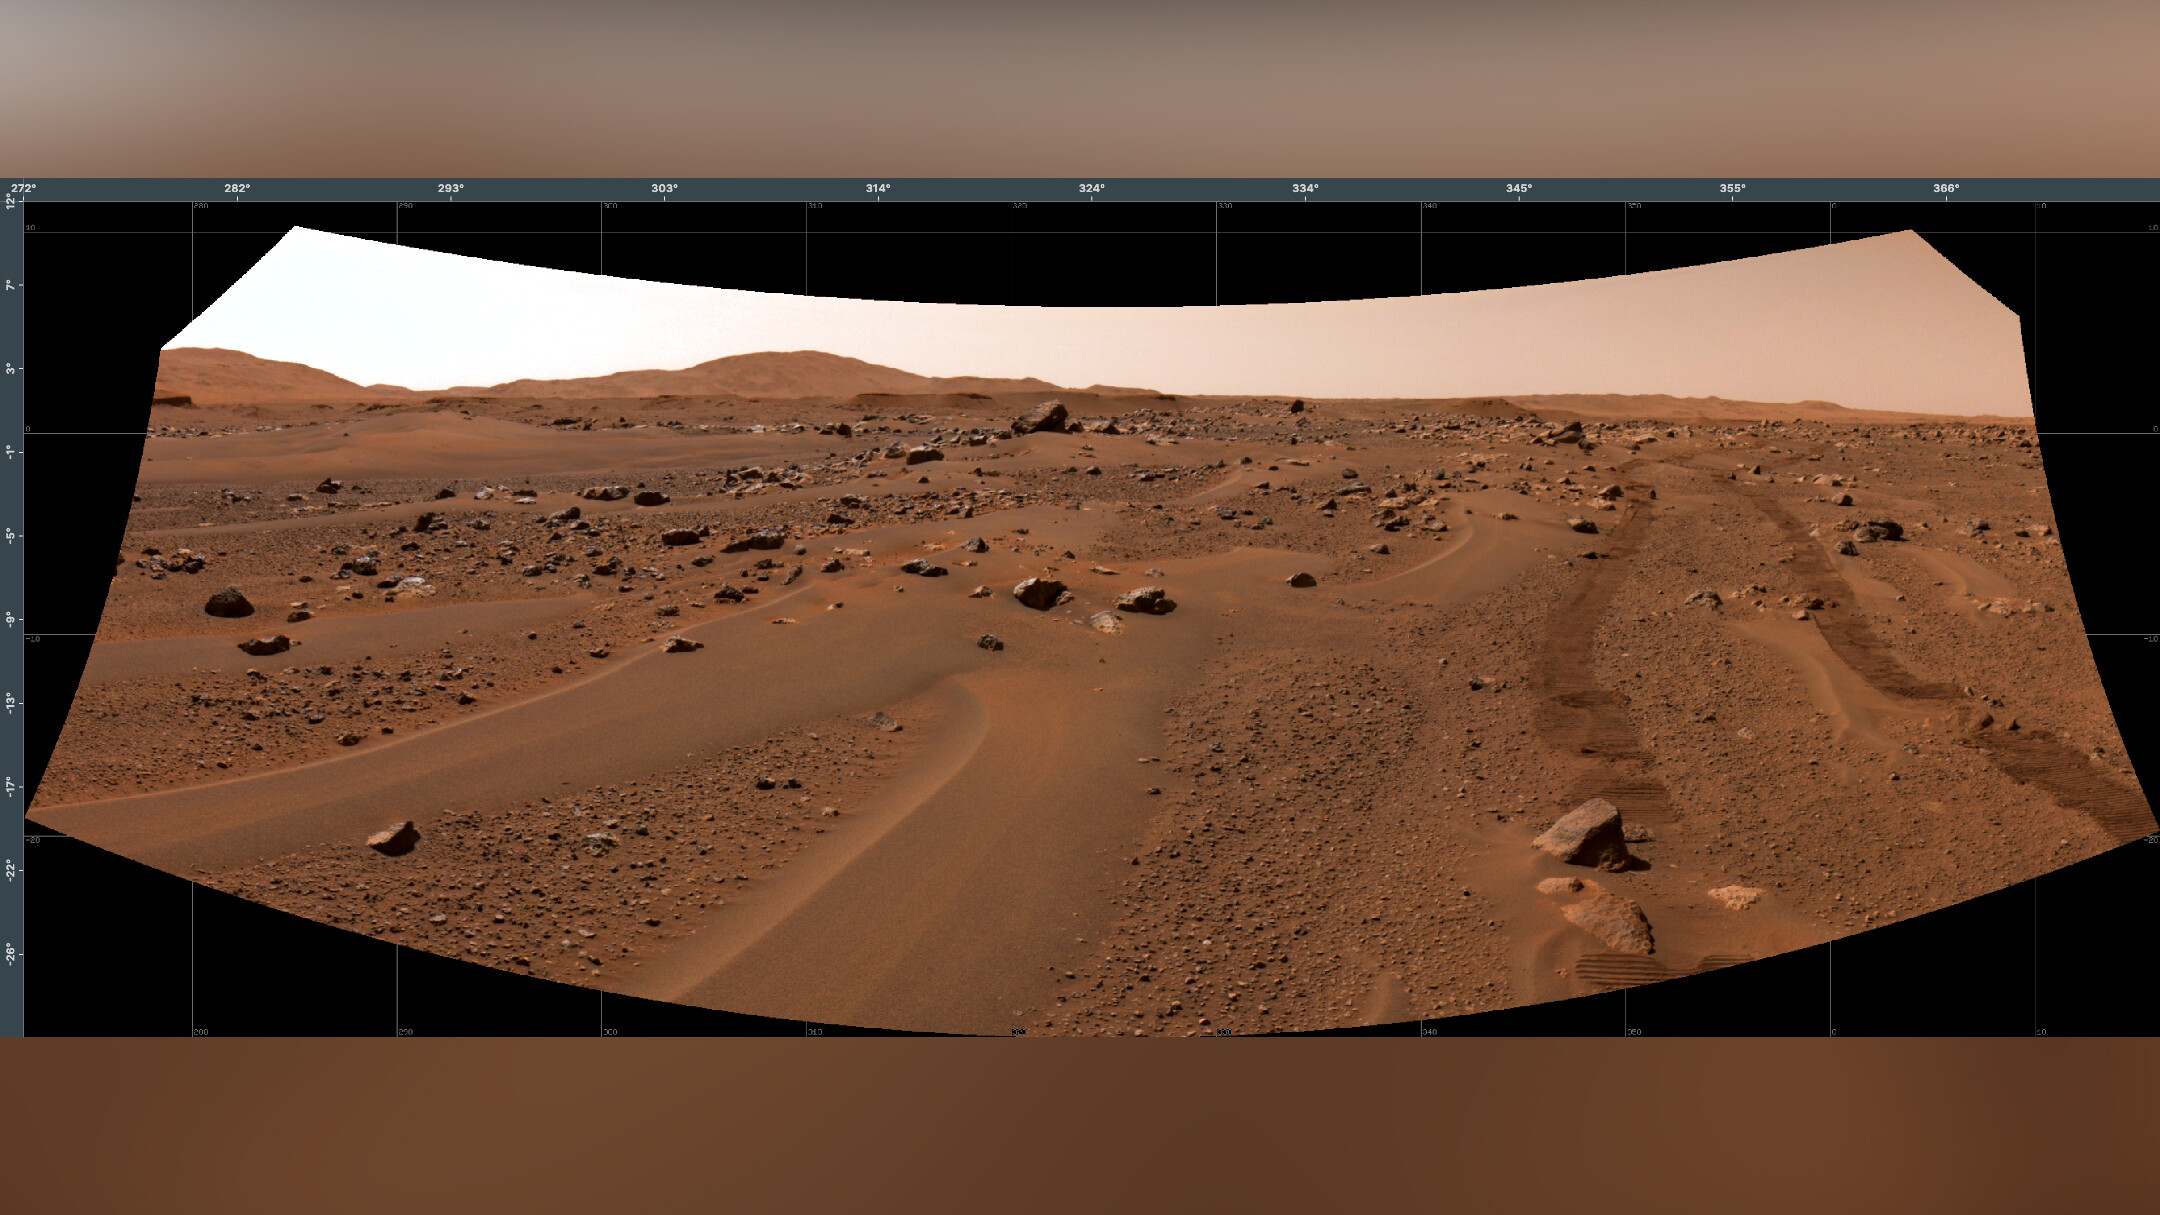 Perseverance rover prepares to collect Martian samples that will be sent to Earth